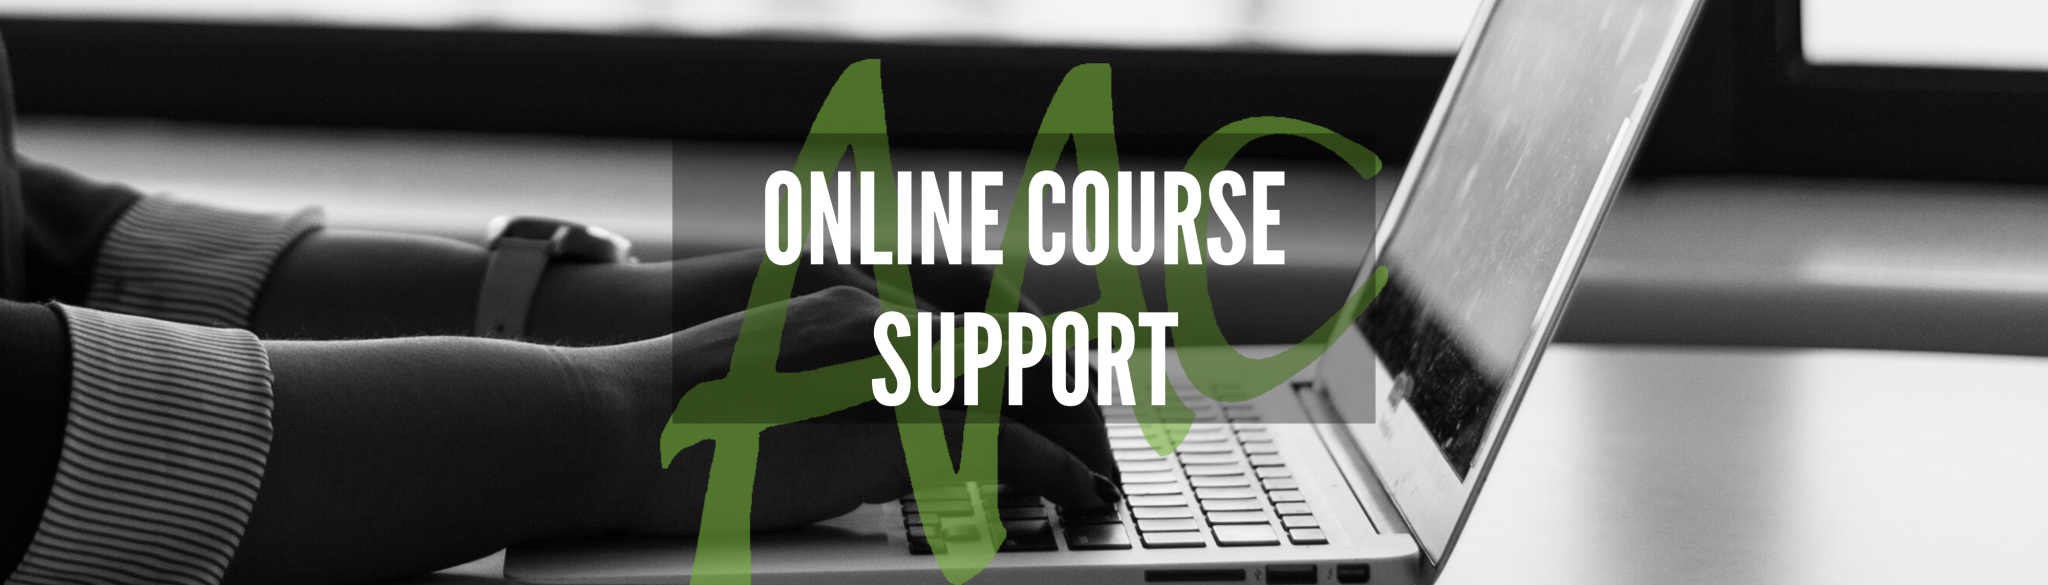 AAC Online Course Support